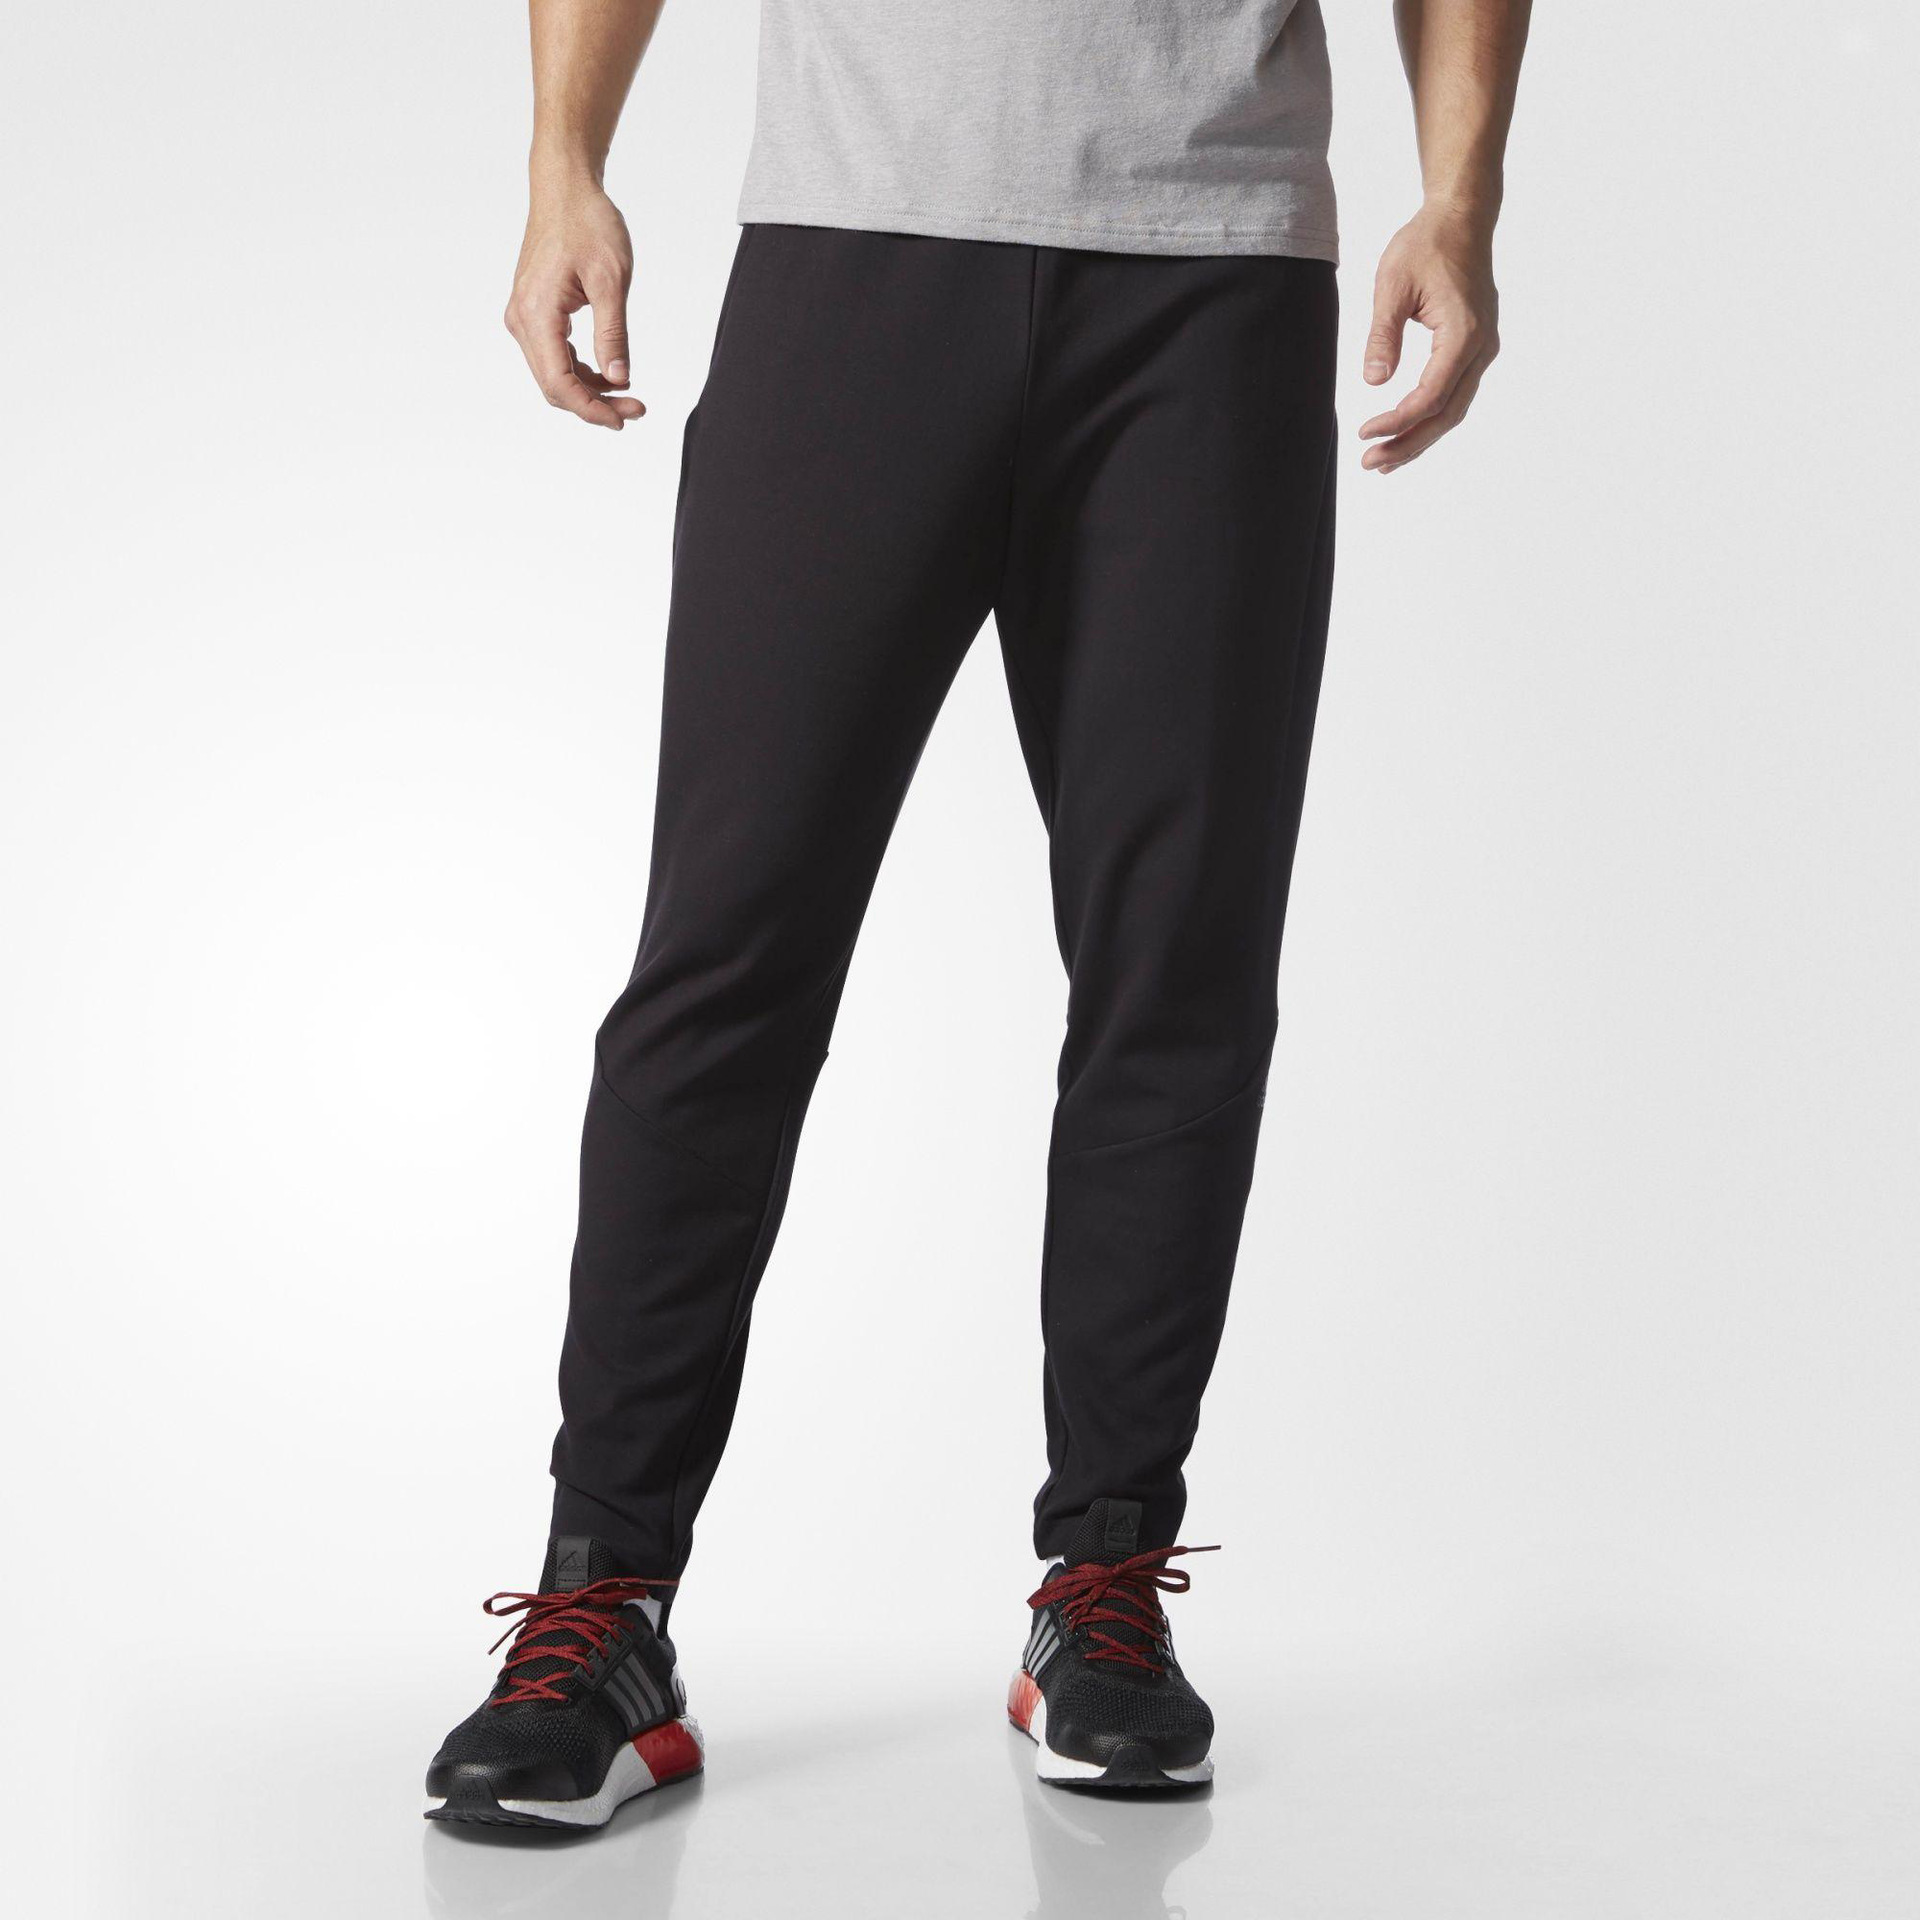 track pants mens custom sweatpants casual pants casual wholesale custom track jogging gym trousers